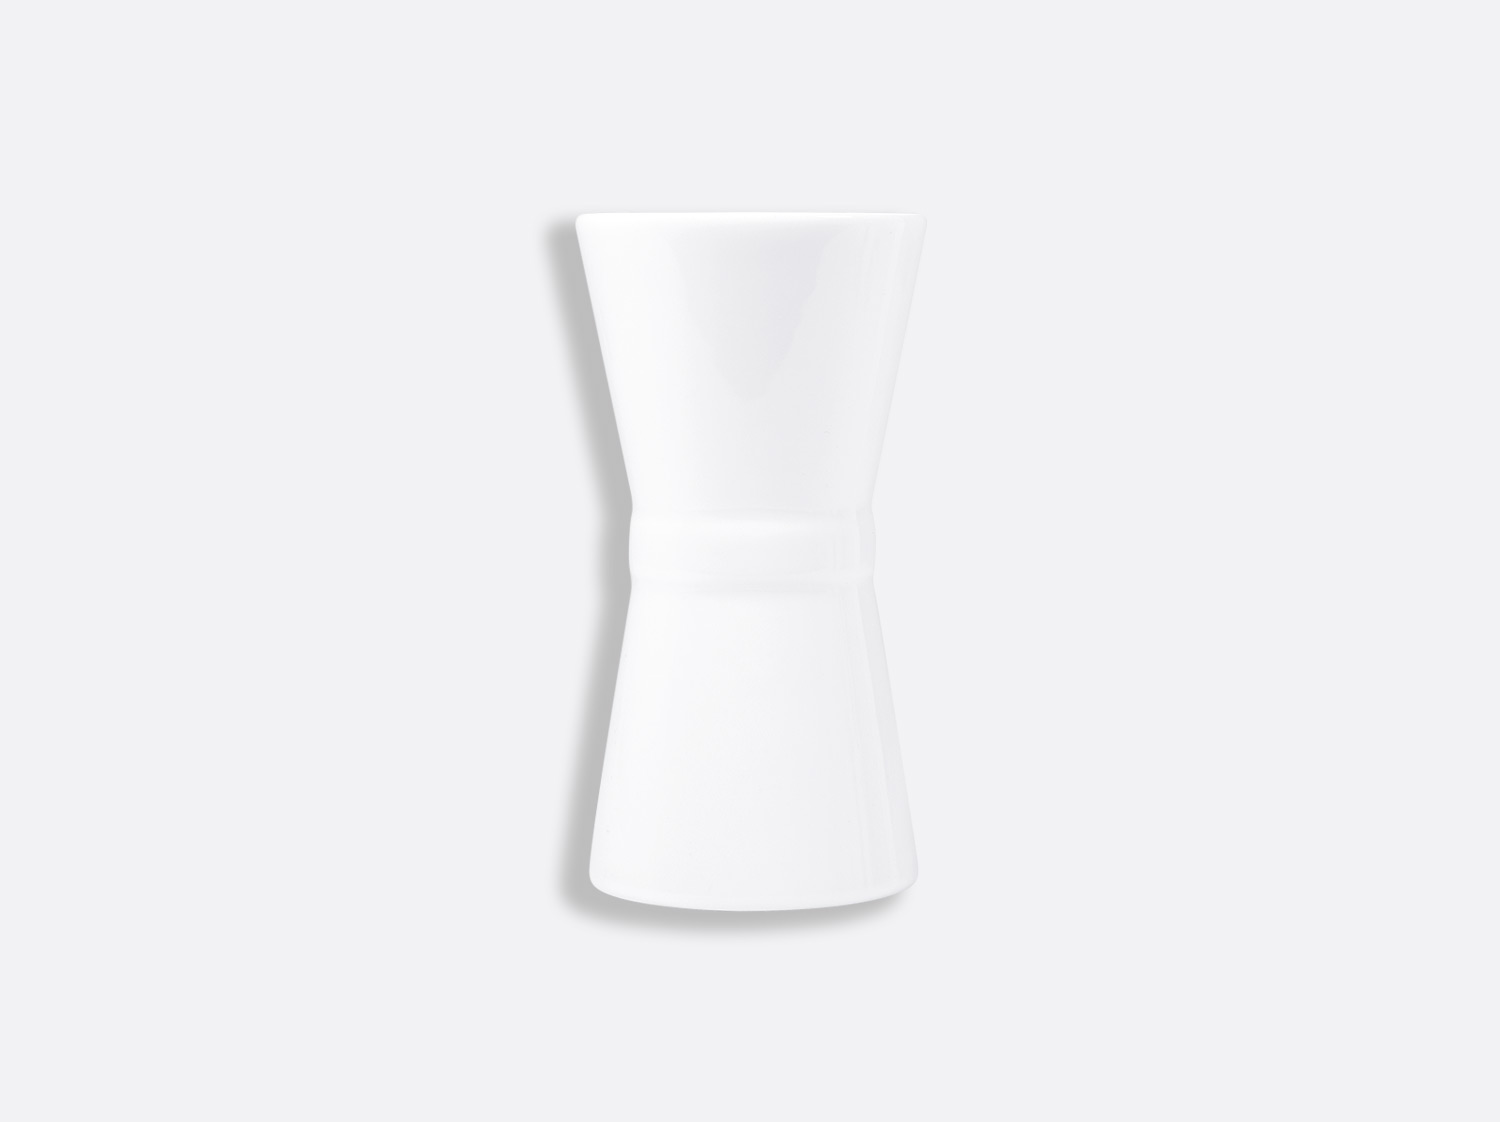 Soliflore Diabolo 12 cm en porcelaine de la collection FANTAISIES BLANCHES Bernardaud